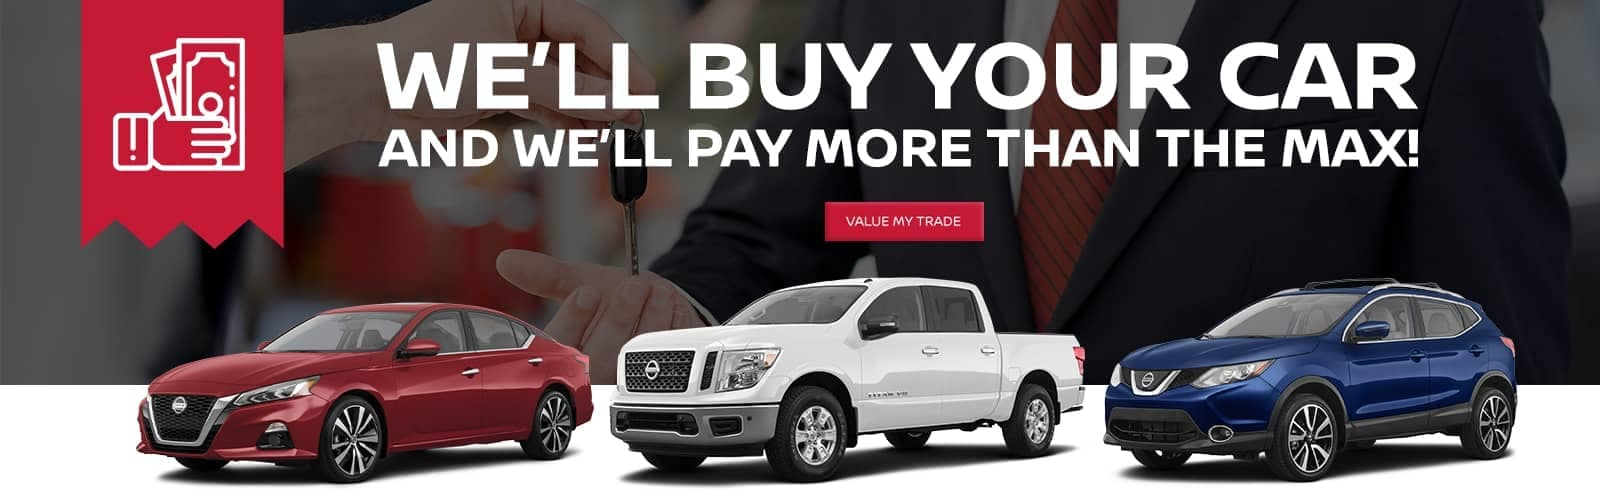 We Will Buy Your Car Banner